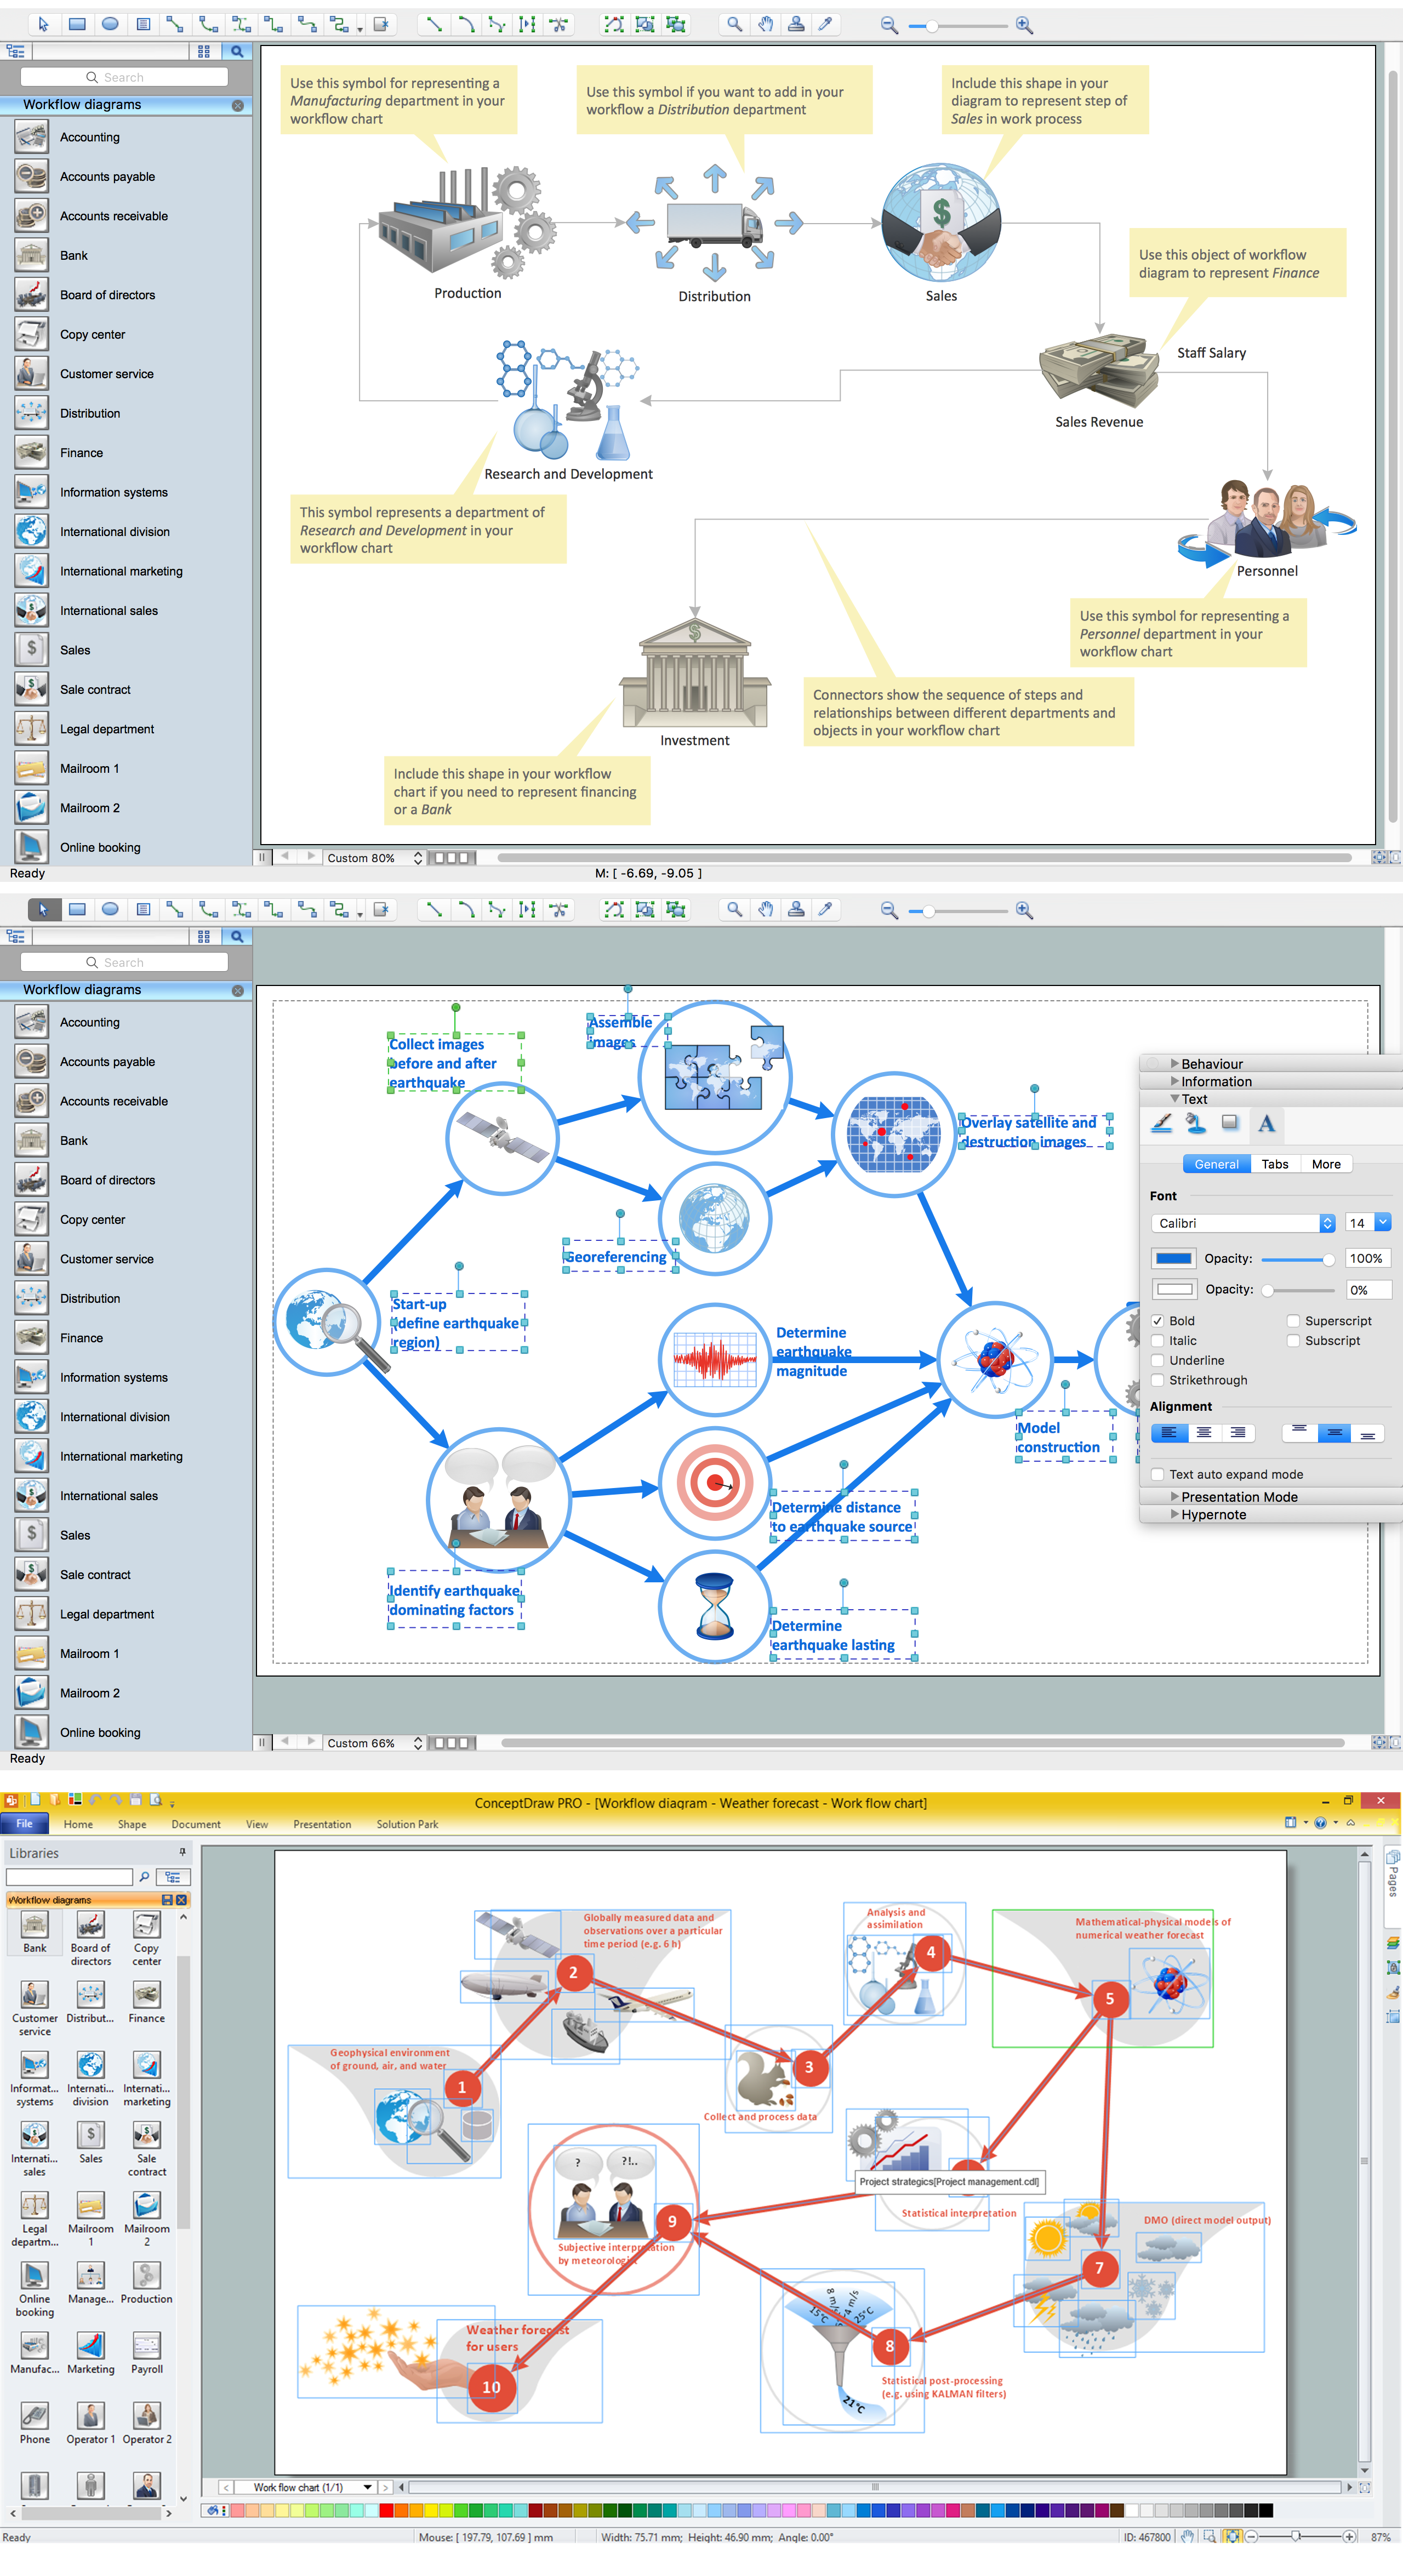 Software Diagrams - Workflow diagram, process flow diagram